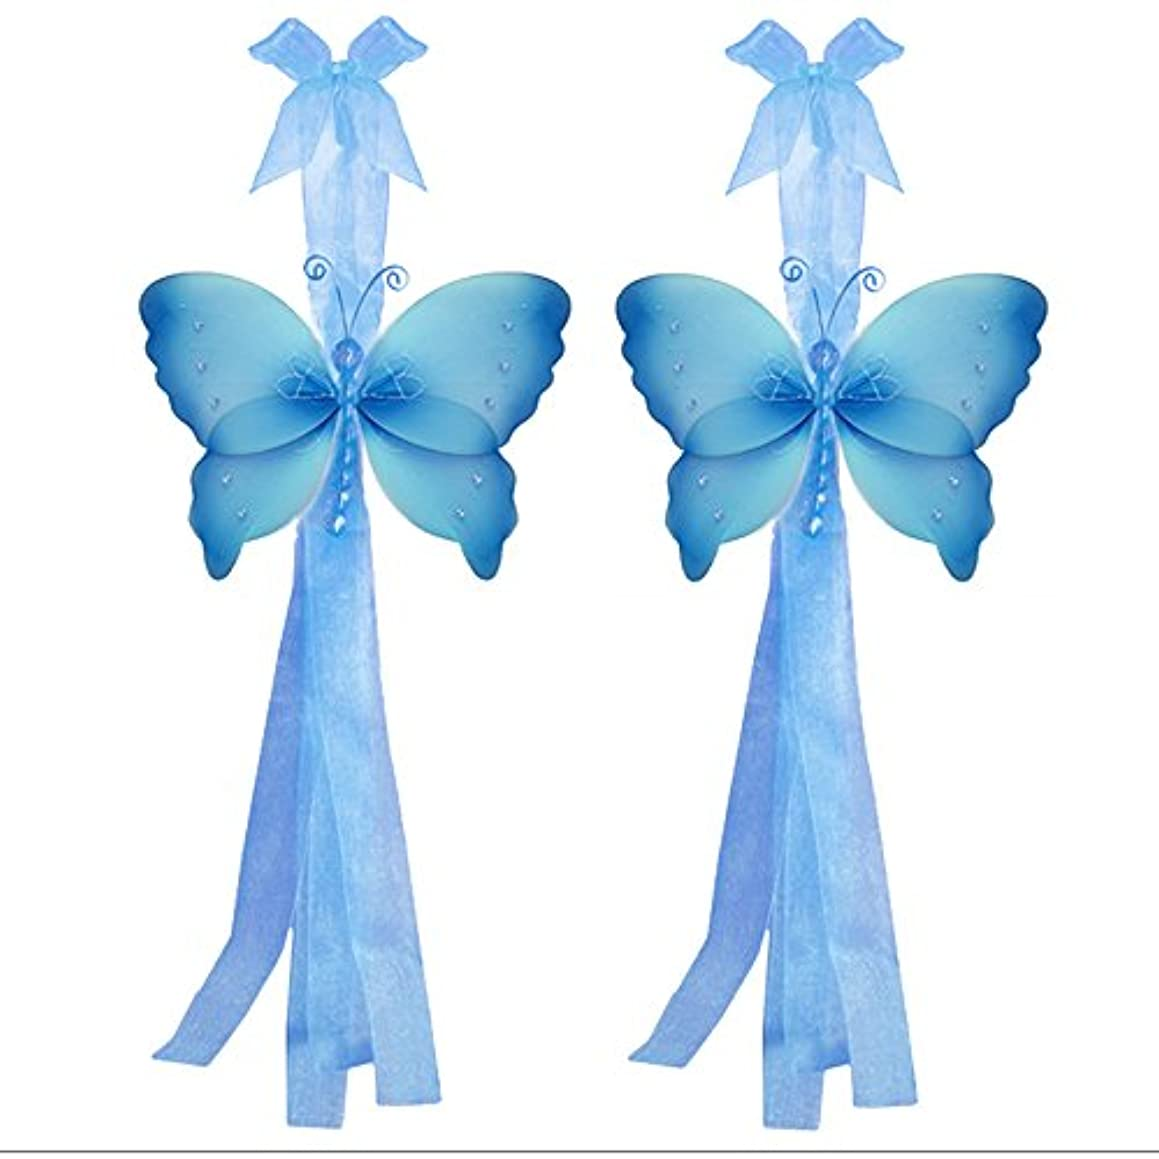 Butterfly Curtain Tiebacks Blue Crystal Nylon Butterflies Pair Set Decorations Window Treatment Holdback Sheer Drapes Holder Drapery Tie Back Decorate Baby Nursery Bedroom Girl Room Kid Decor Home DIY